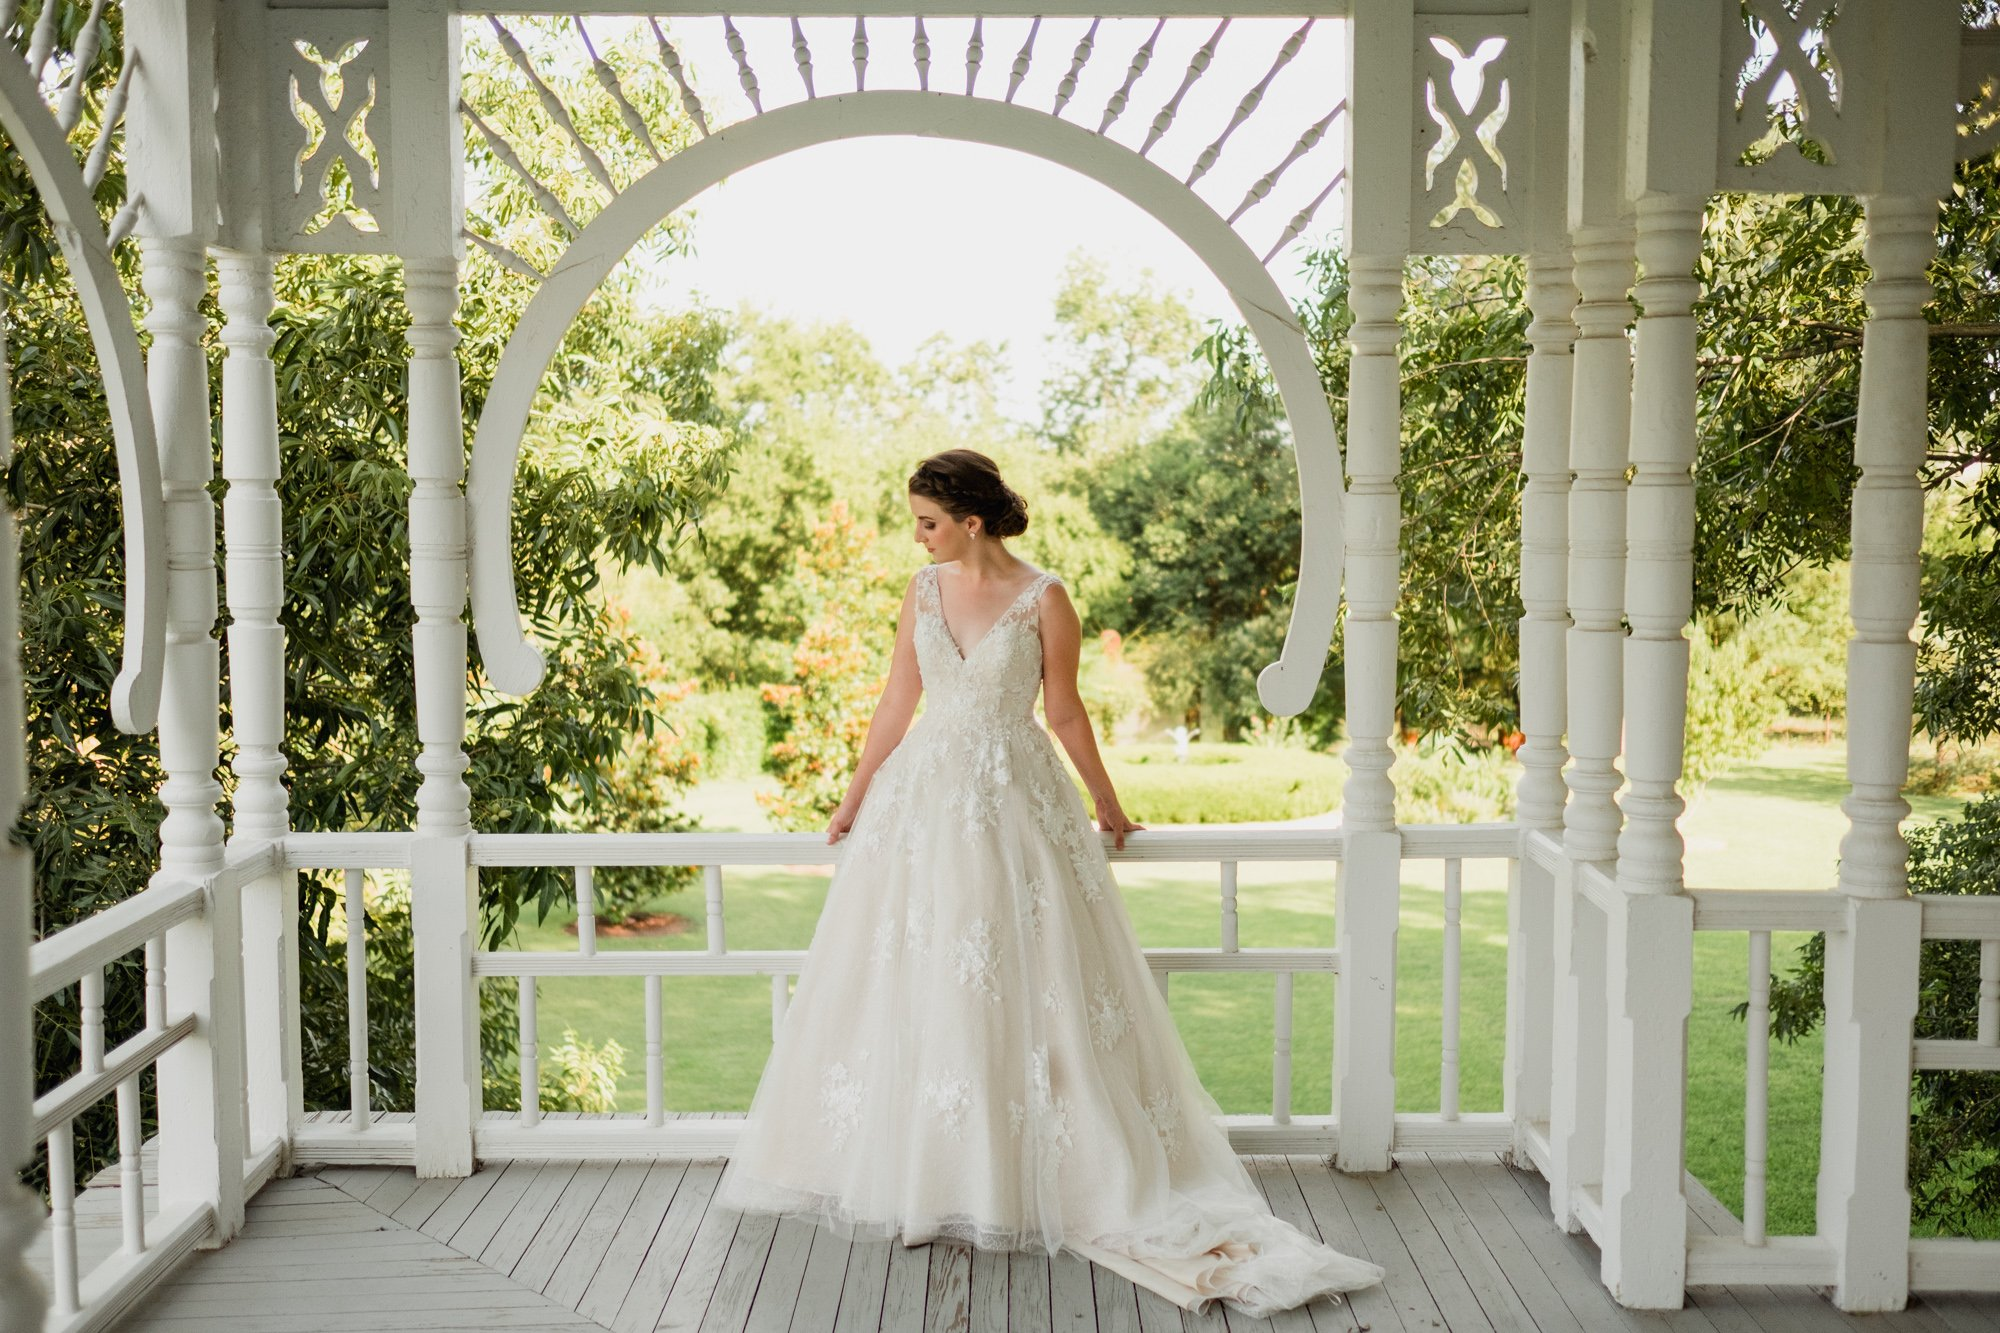 bright and light modern summer bridal session in austin texas, bridals at barr mansion, austin bridal portraits, pre-wedding portrait session, barr mansion bridal session, bridal portraits at an old house, barr mansion photographer